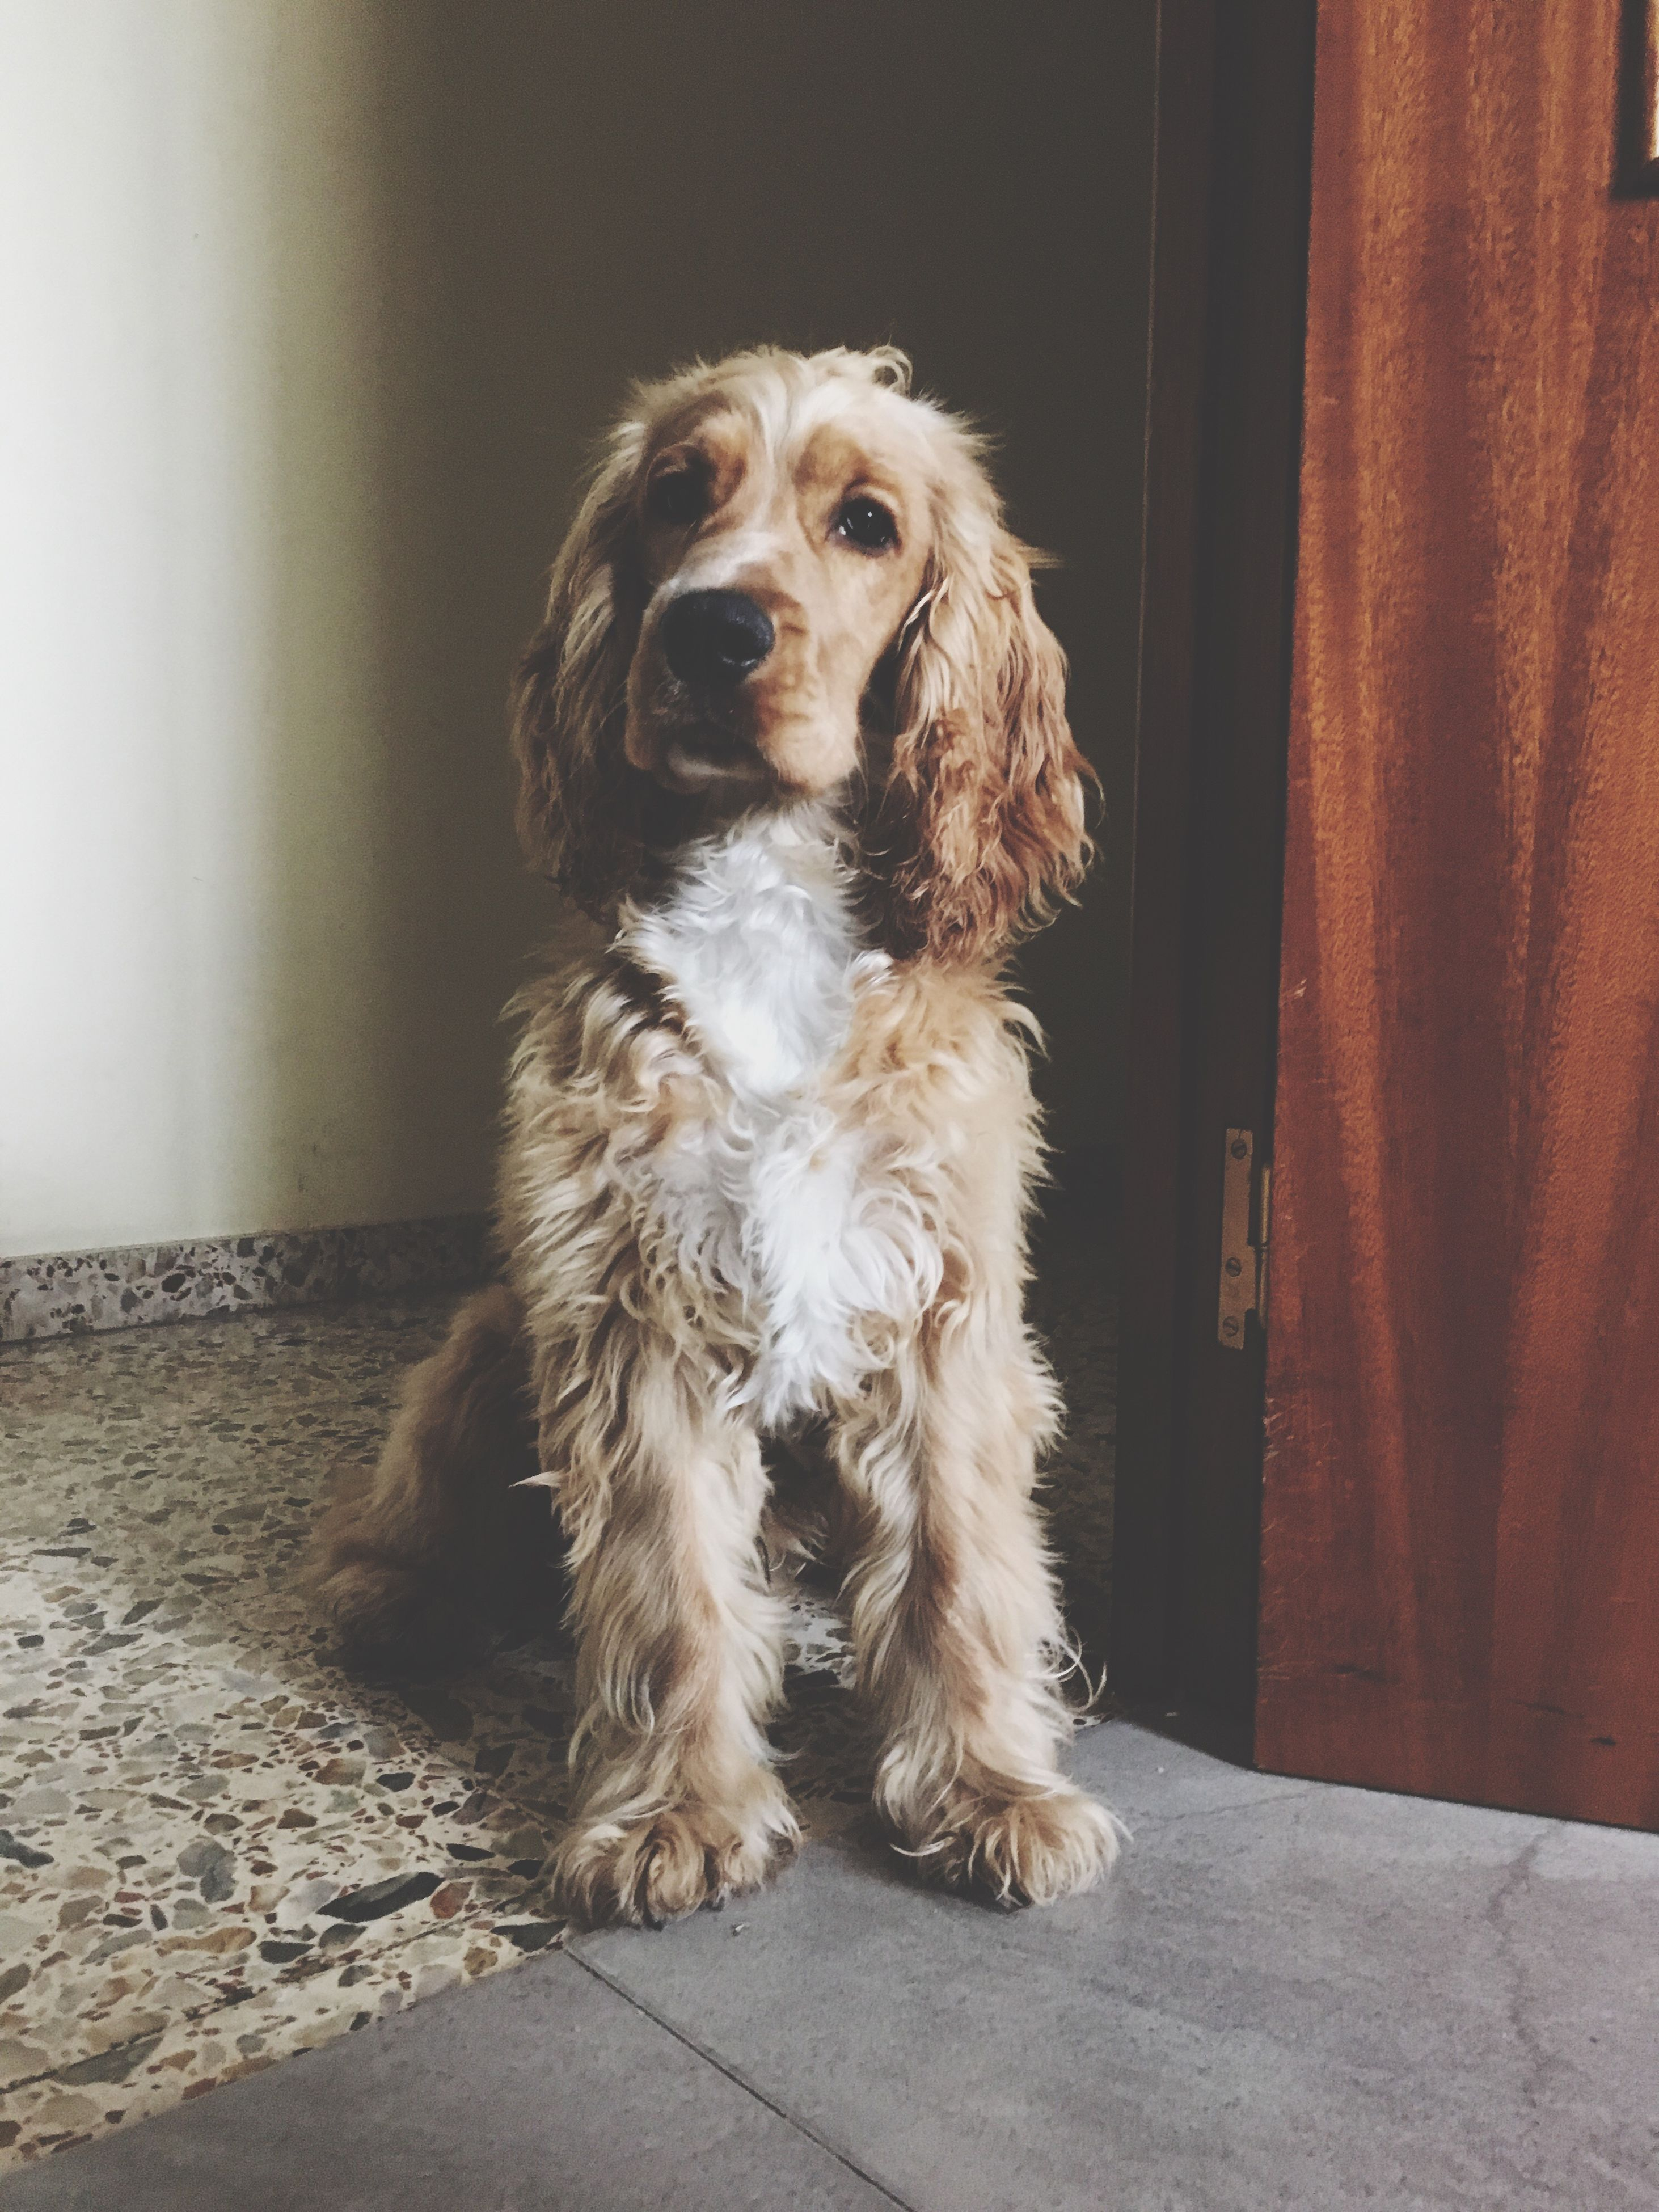 dog, pets, domestic animals, animal themes, one animal, mammal, indoors, animal hair, sitting, portrait, full length, looking at camera, home interior, loyalty, front view, flooring, pampered pets, no people, relaxation